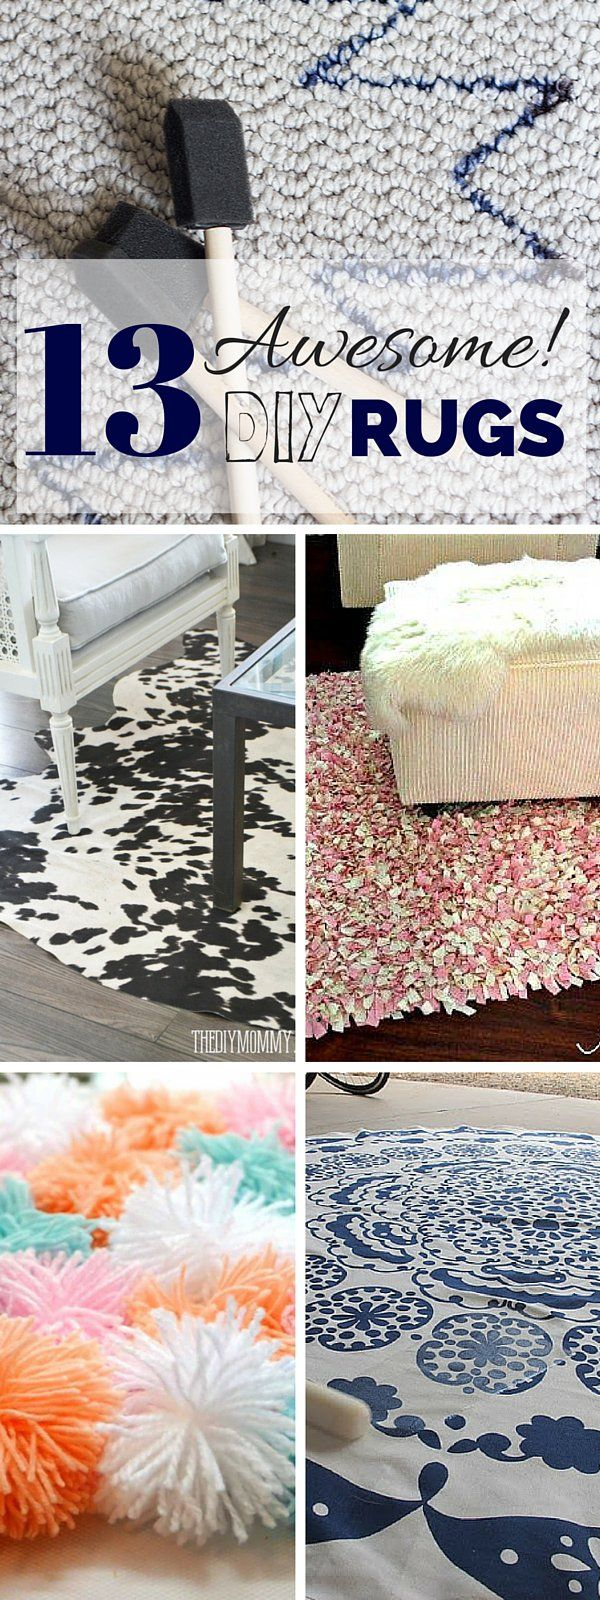 13 Awesome DIY Rugs You Could Be Making Right Now